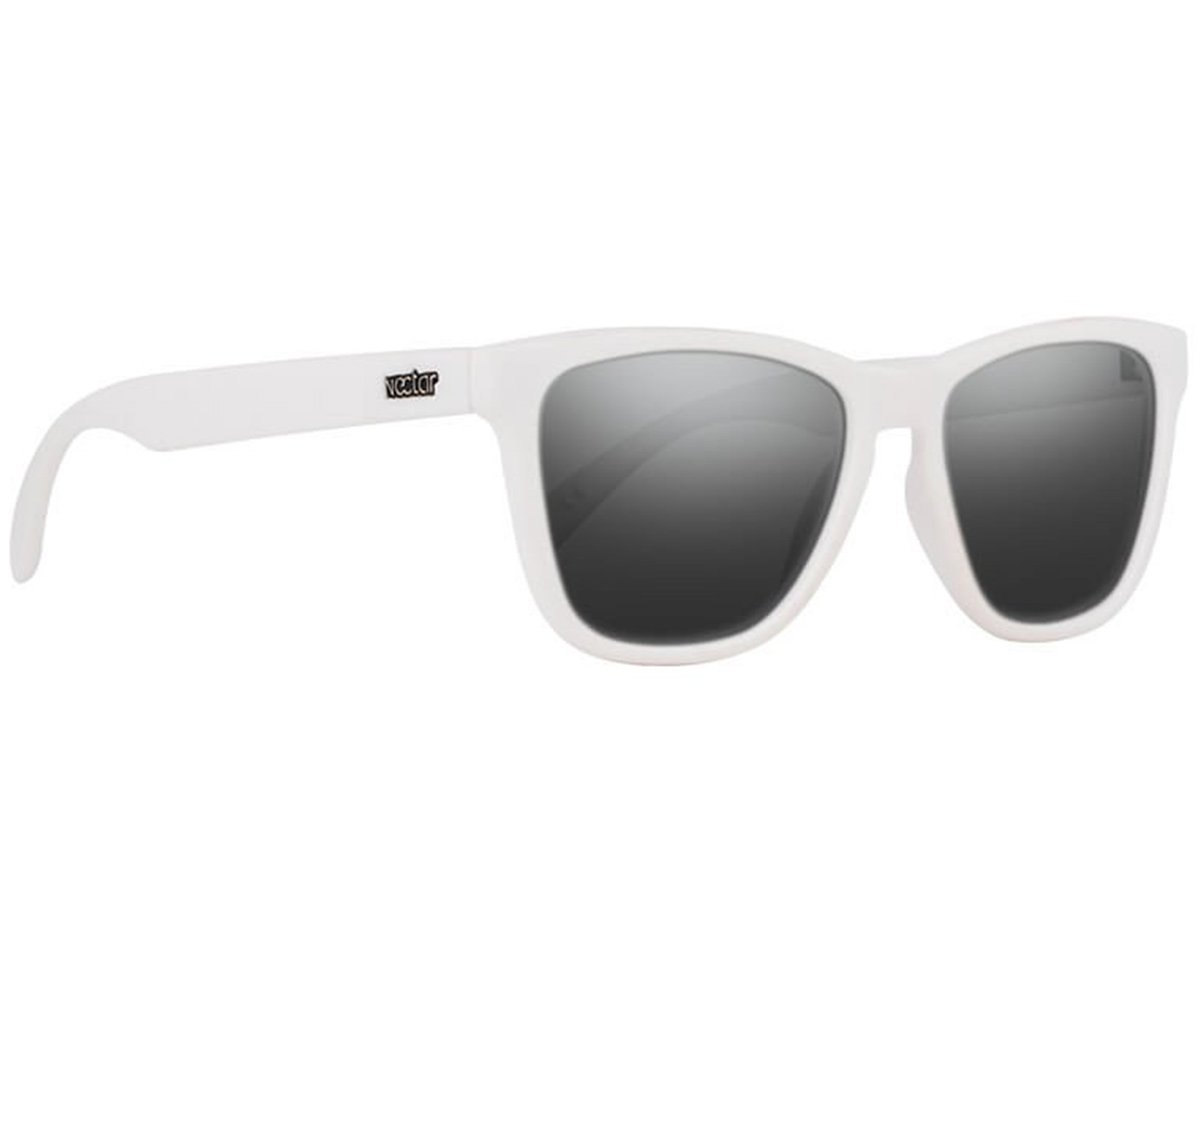 White Polarized Sunglasses For Men And Women With Black Lenses | Flex Frames | 100% UV Protection - The Crux By Nectar (Yeti) by NECTAR